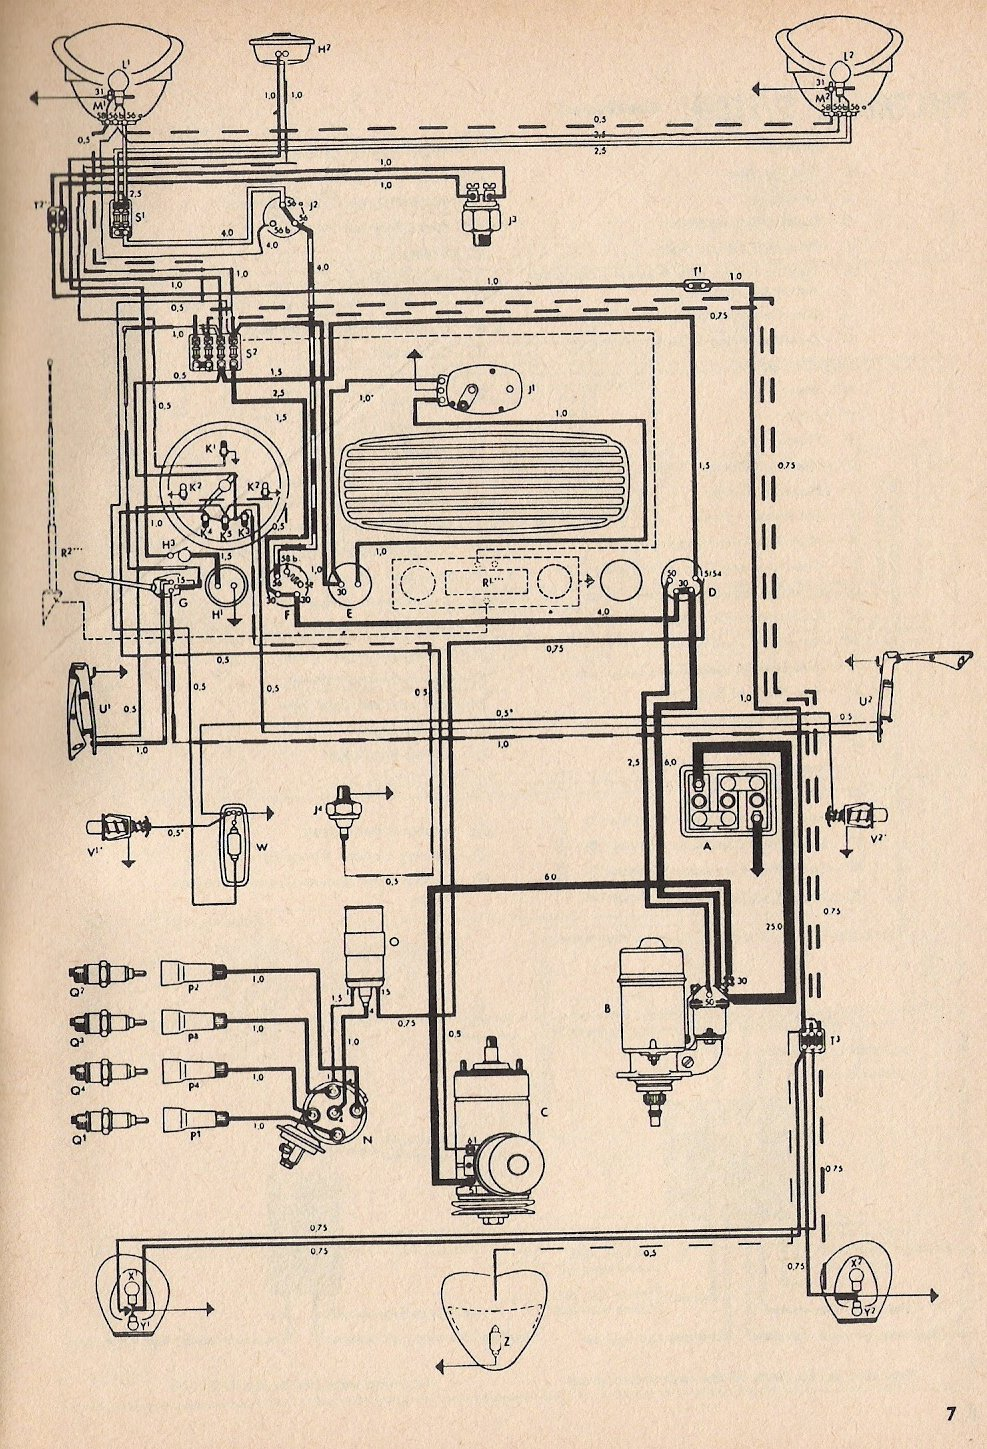 Bug on 1968 dodge charger wiring diagram